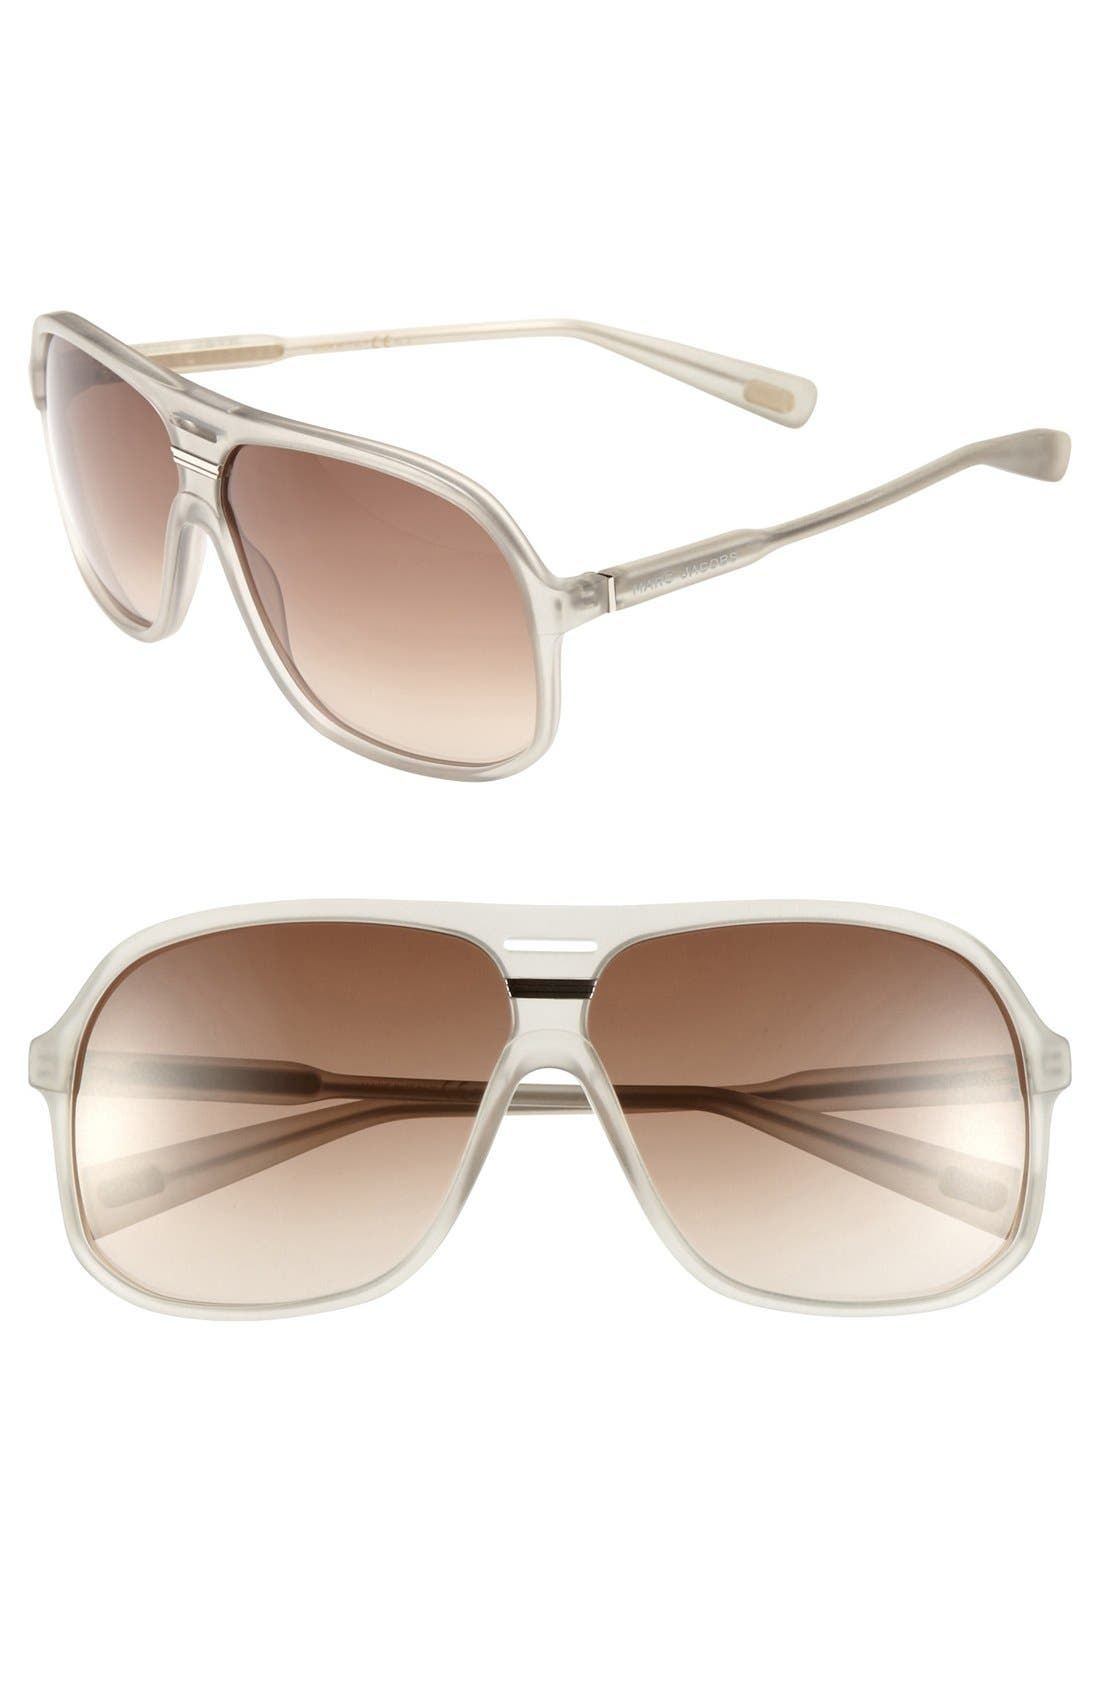 Alternate Image 1 Selected - MARC JACOBS 63mm Sunglasses